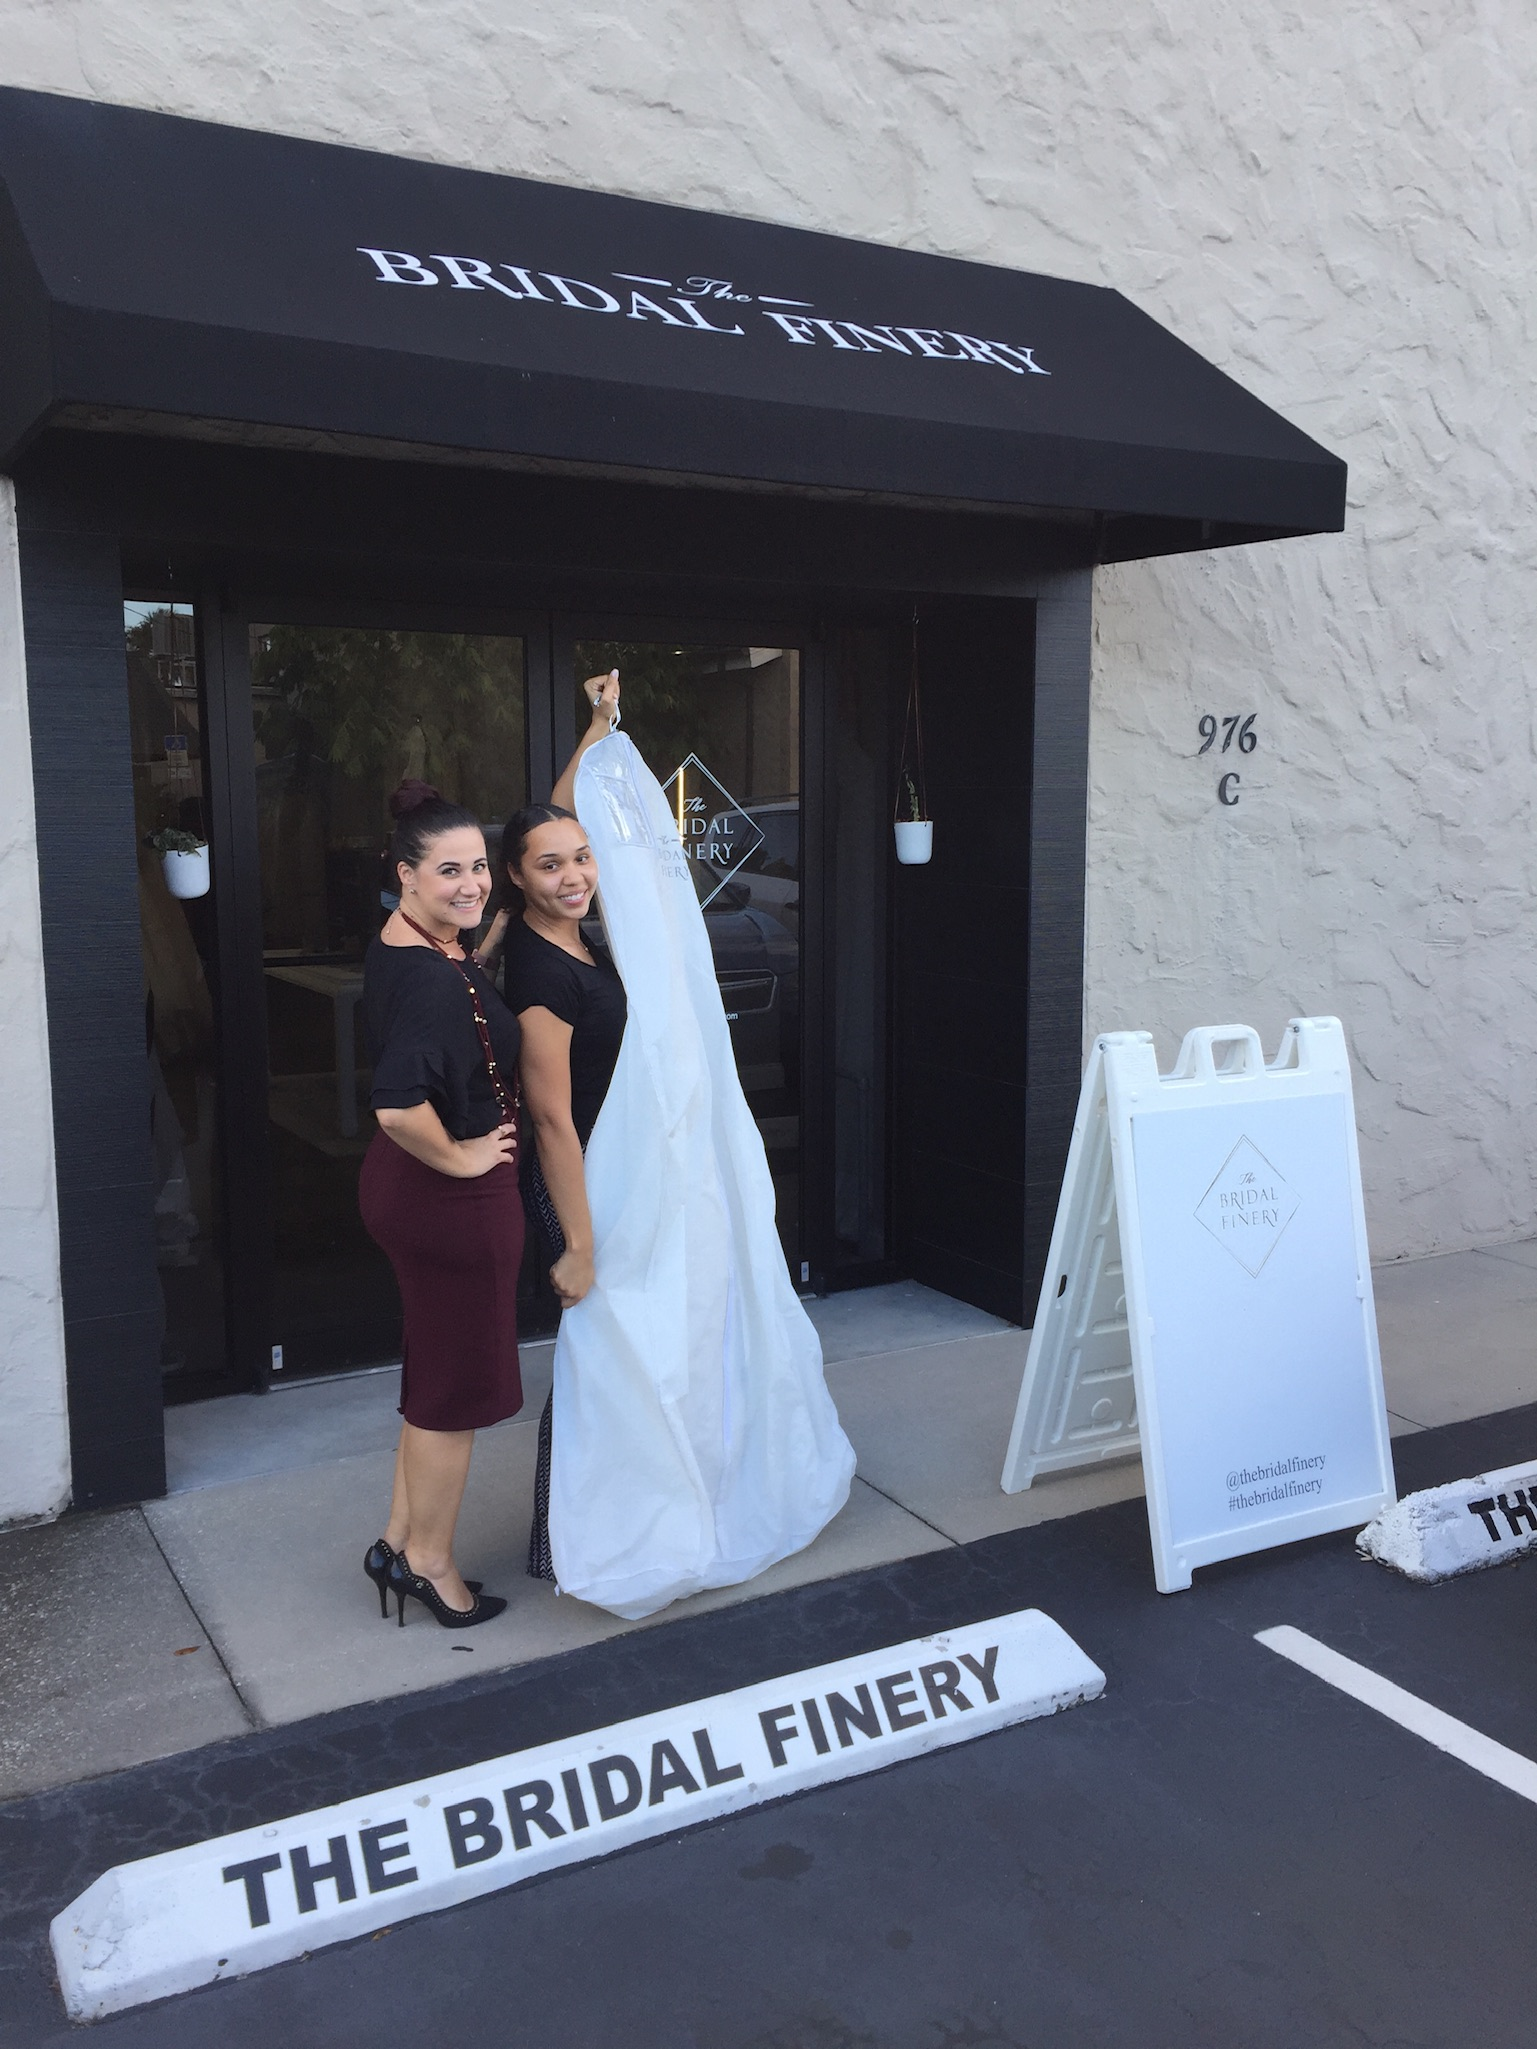 The bridal finery winter park by appointment real bride